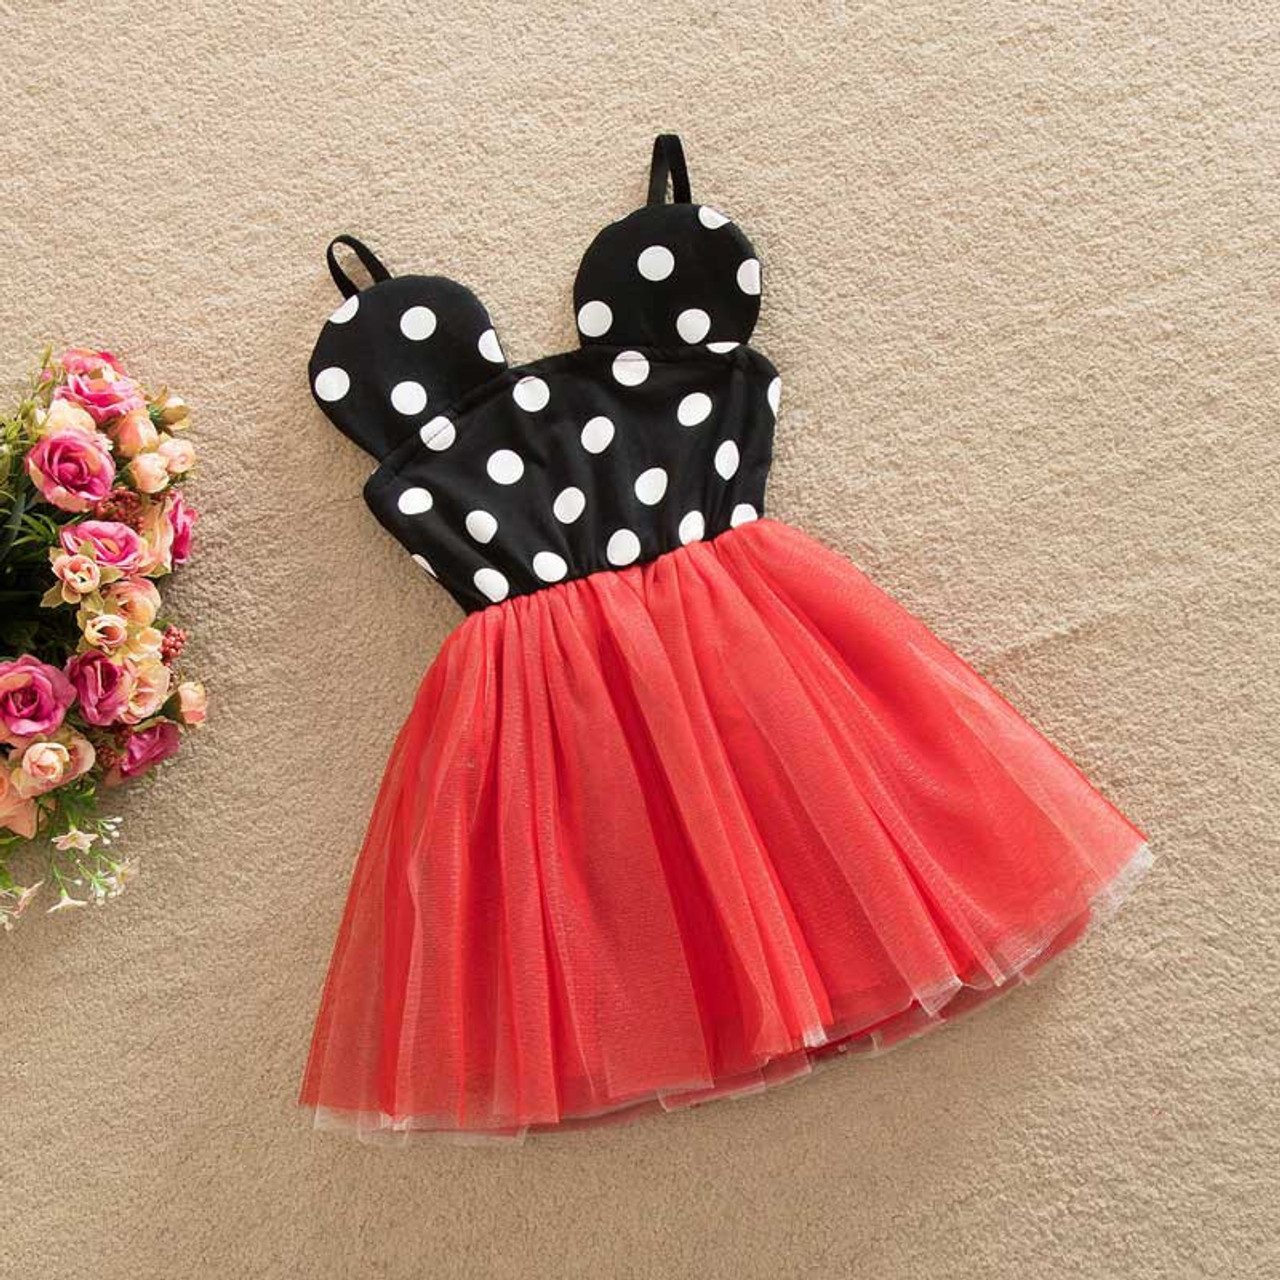 Minnie Mouse Inspired Black White Polka Dot Red Birthday Party Dress